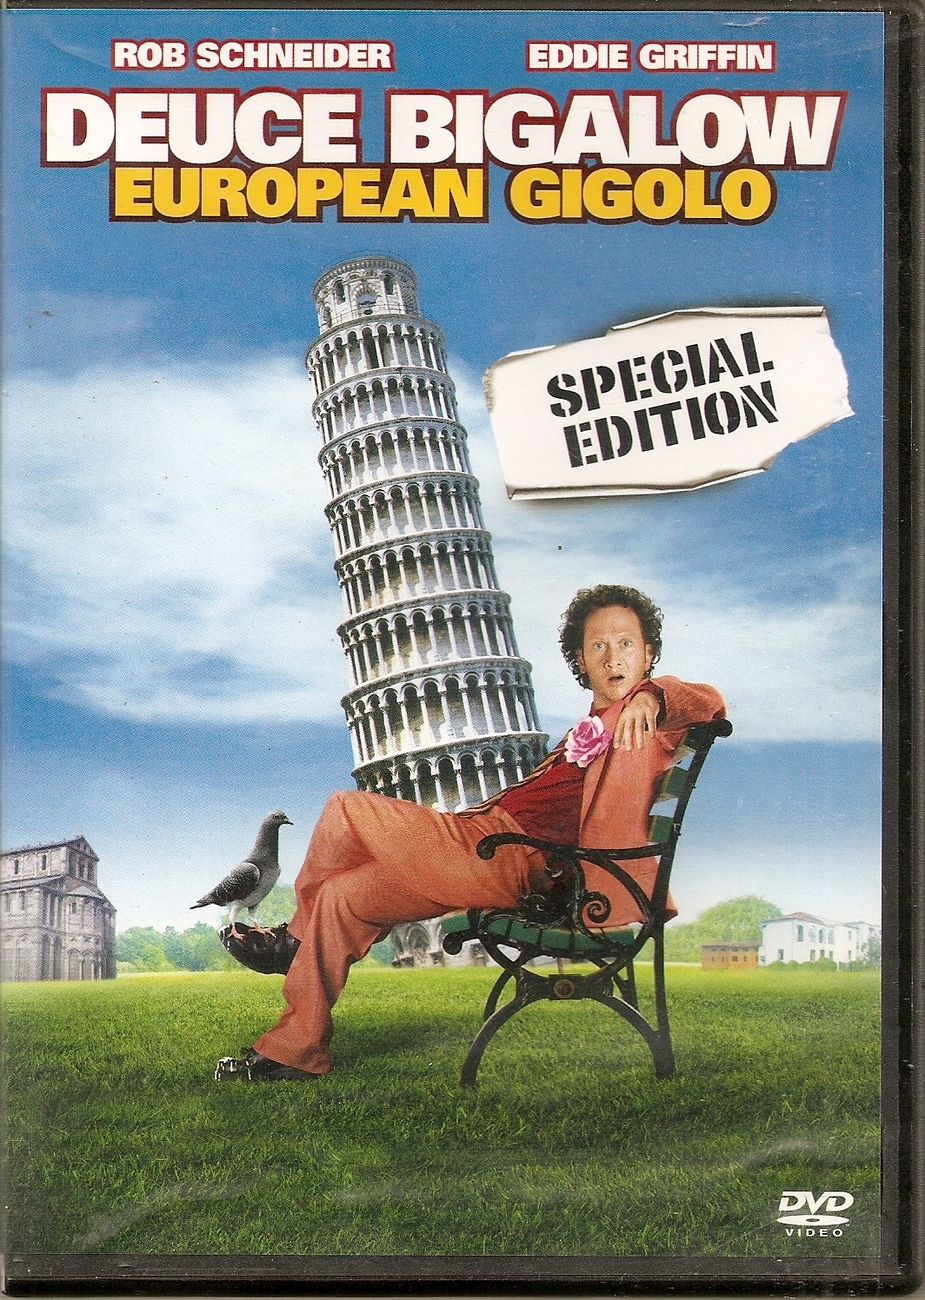 DVD--Deuce Bigalow: European Gigolo [WS] directed by Mike Bi